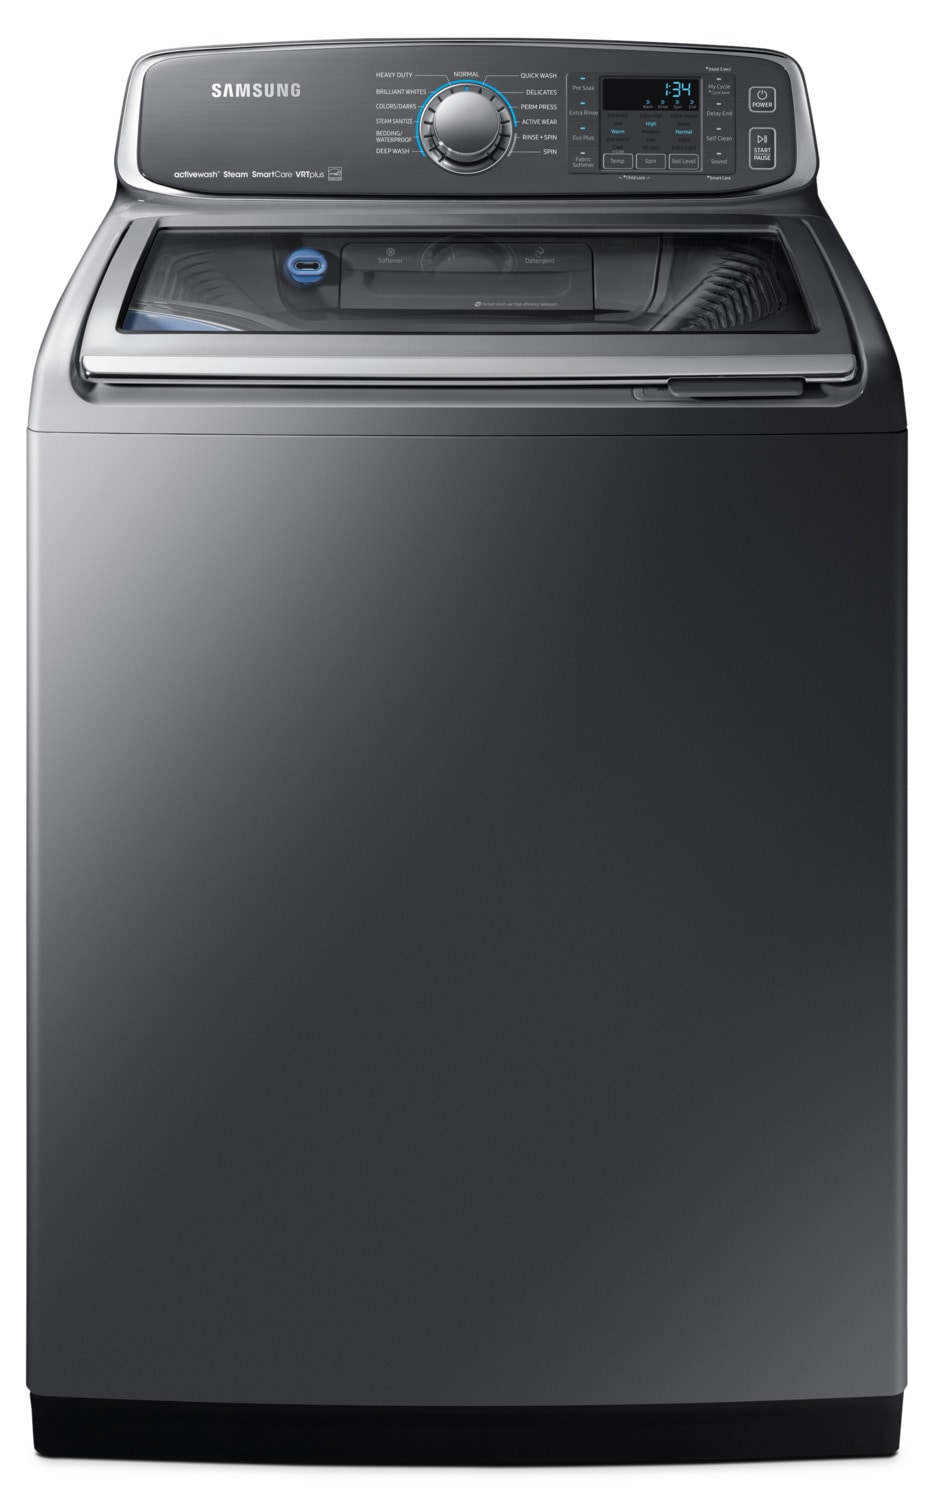 Washers and Dryers - Samsung 6.0 Cu. Ft. Top-Load Washer – WA52M7755AP/A4